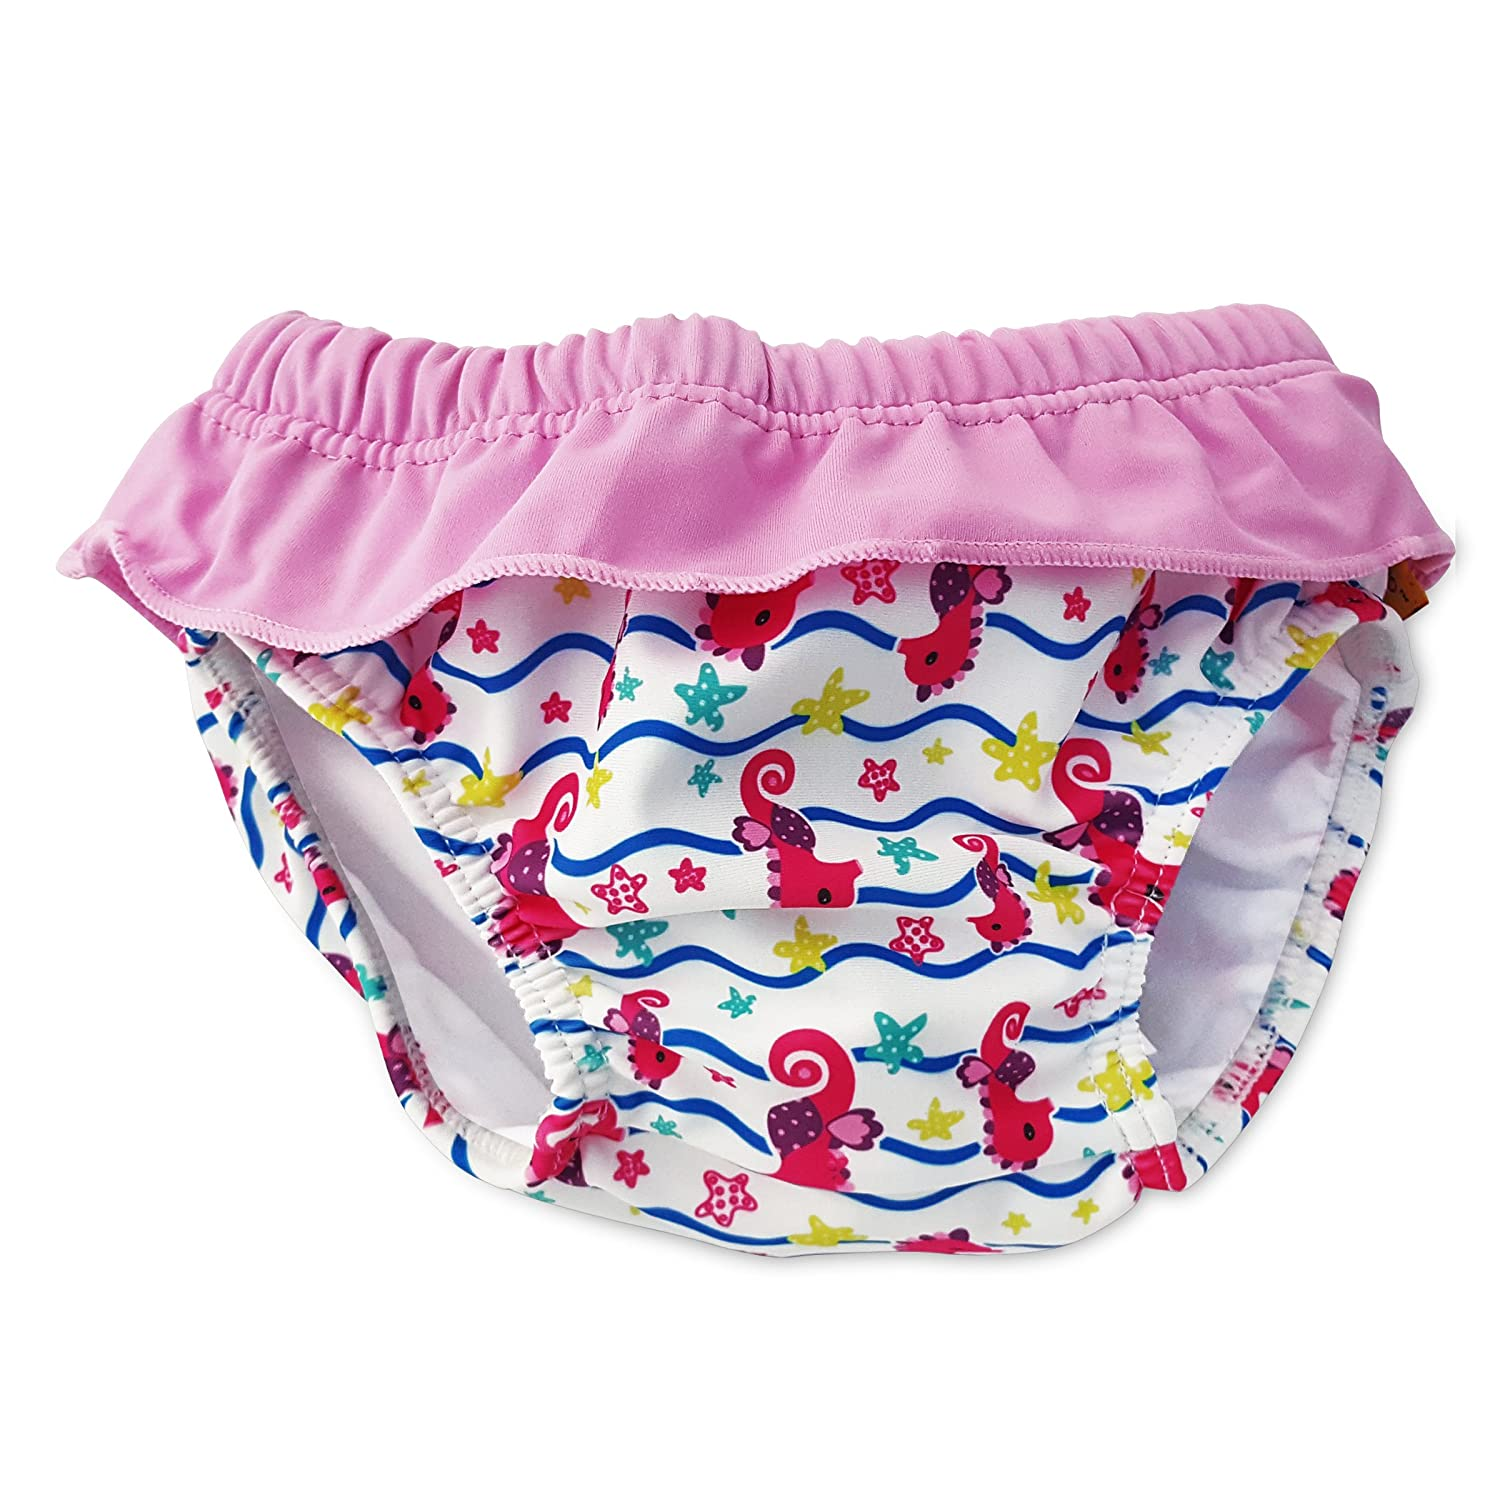 Cheekaaboo Swim Diapers for Baby & Kids, Adjustable and Reusable, 0-30 Months, 5 Designs BRSDUTSC